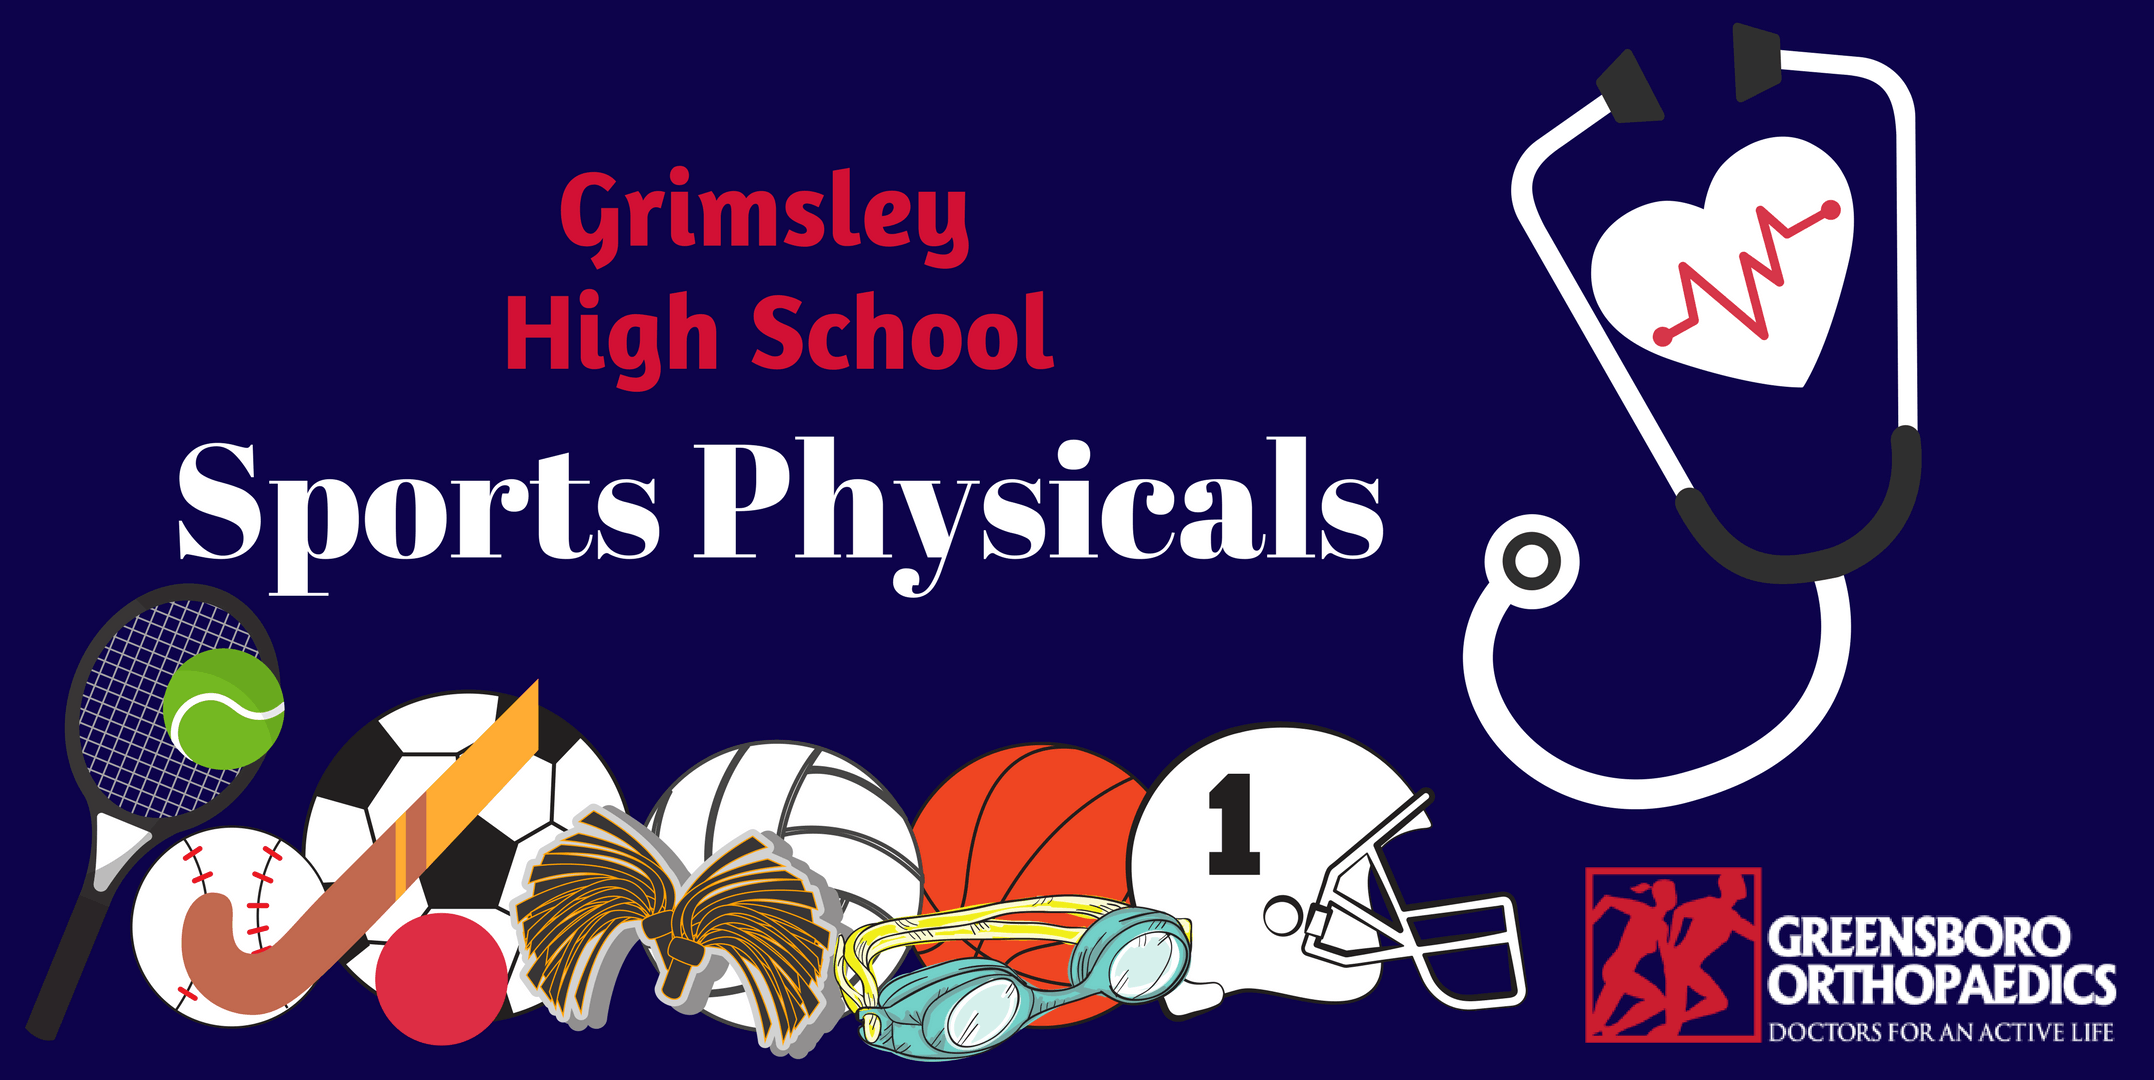 Grimsley High School Sport Physical Clinic